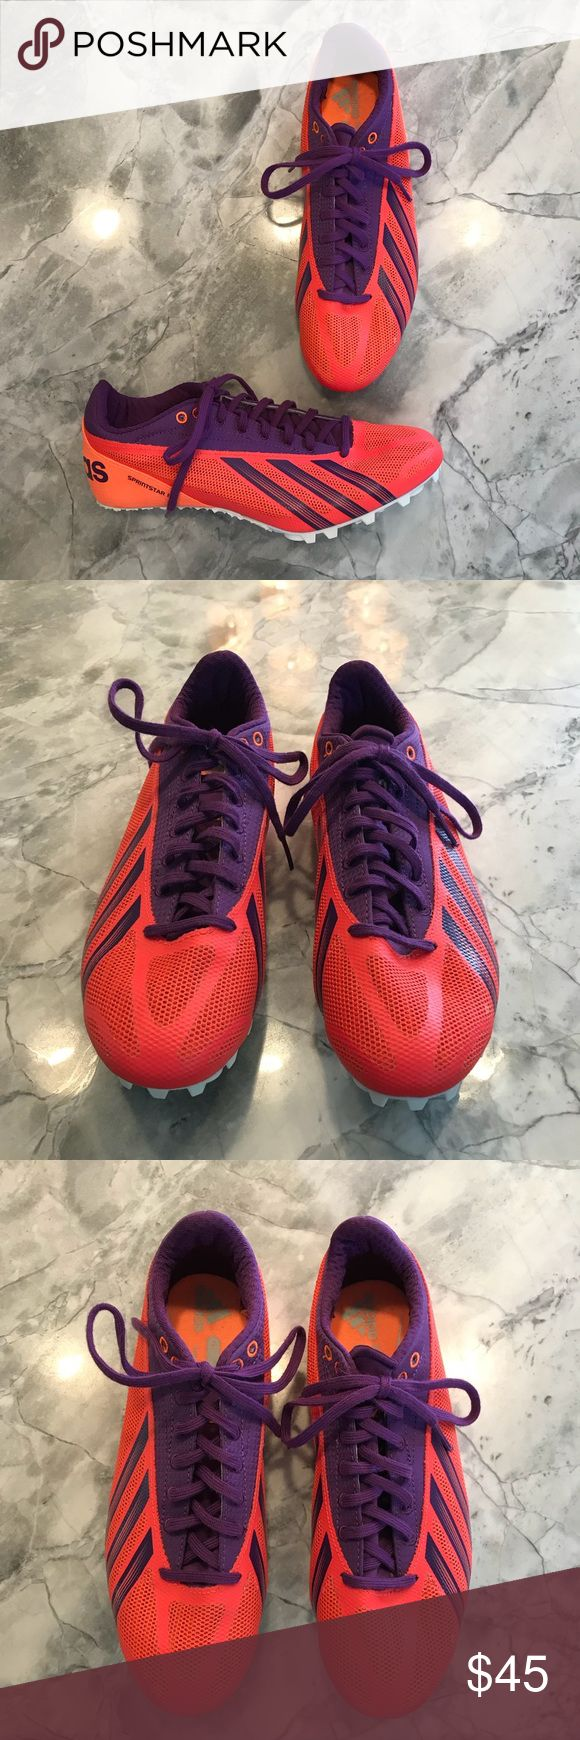 ADIDAS Women's SprintStar IV Shoes Size 7 - NEW ADIDAS Women's SprintStar IV Shoes. Size 7. Track, running, and sprint shoes. New, never worn. Neon orange/pink and purple. adidas Shoes Athletic Shoes